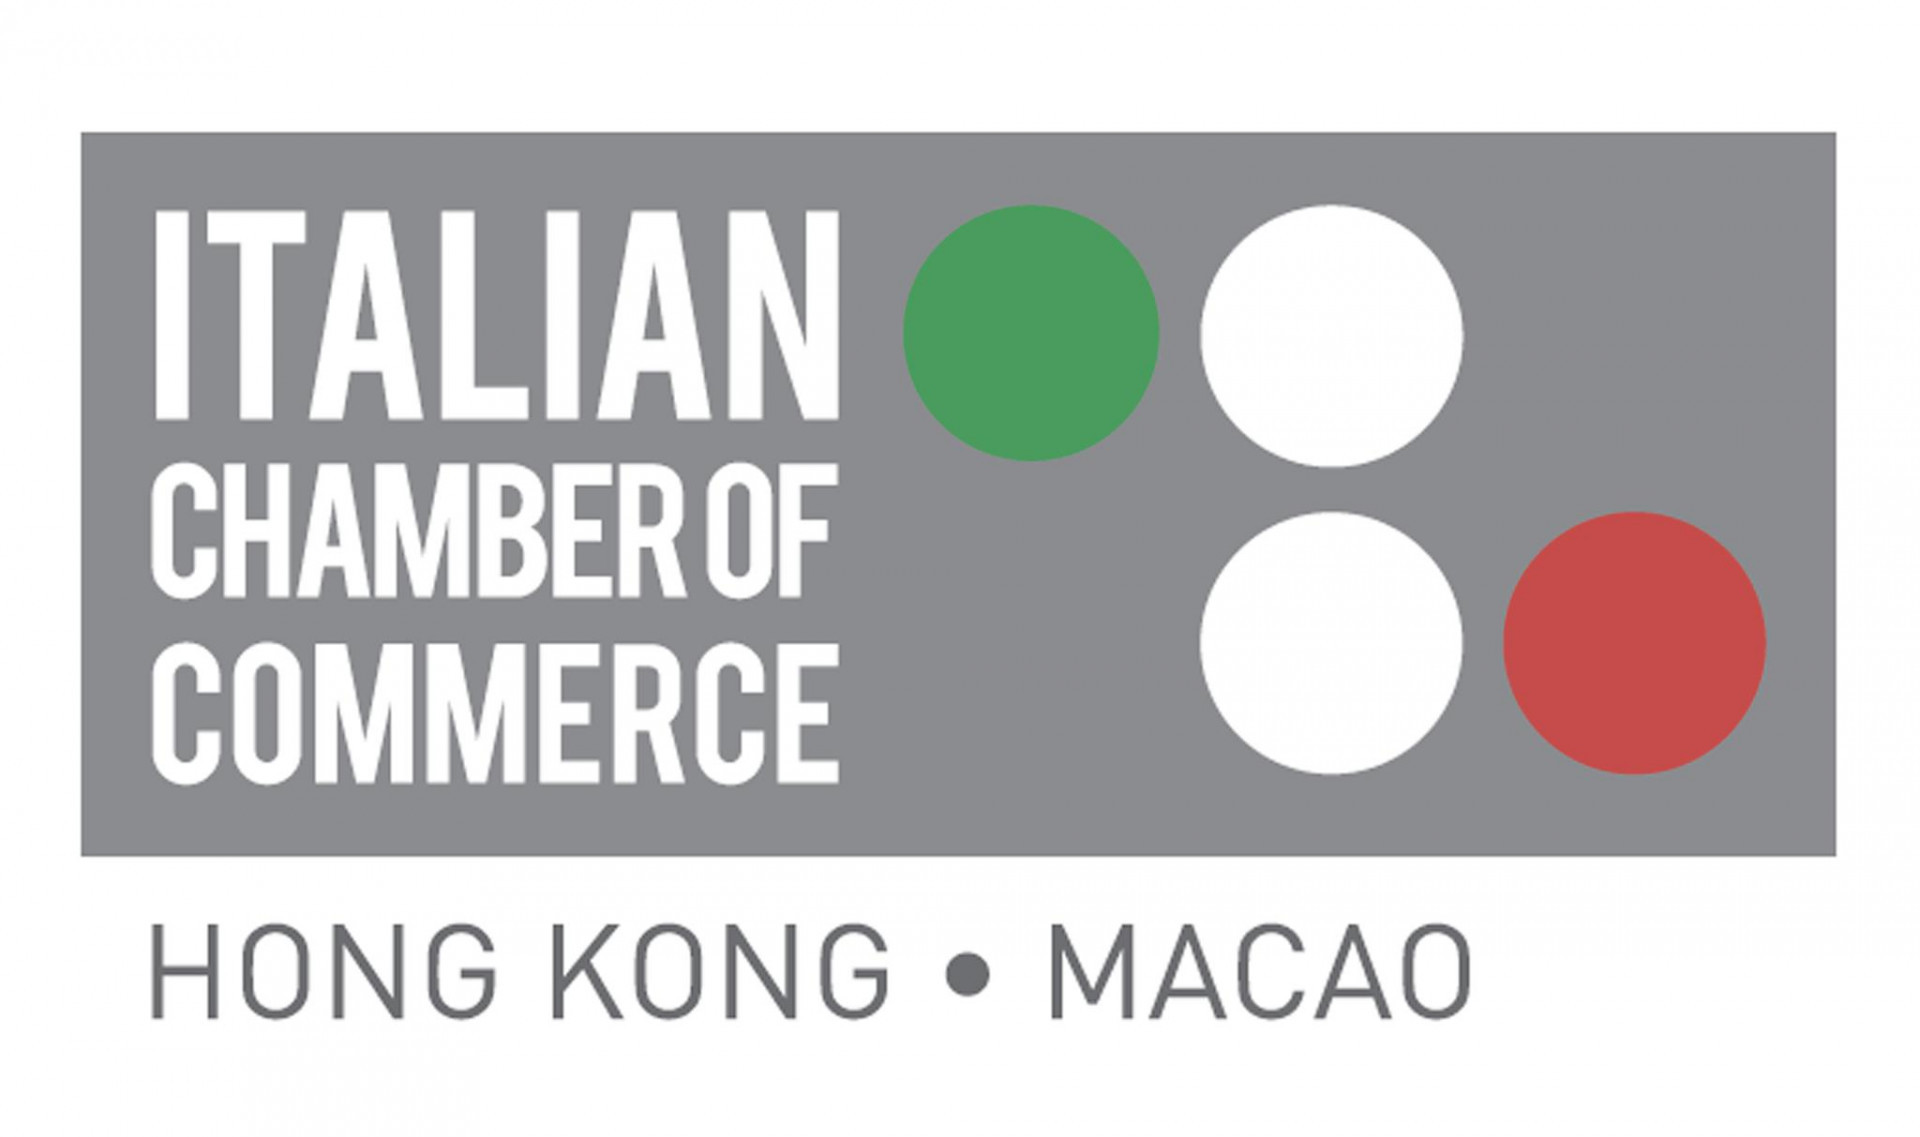 How the Italian Chamber of Commerce Grew 30% with Glue Up